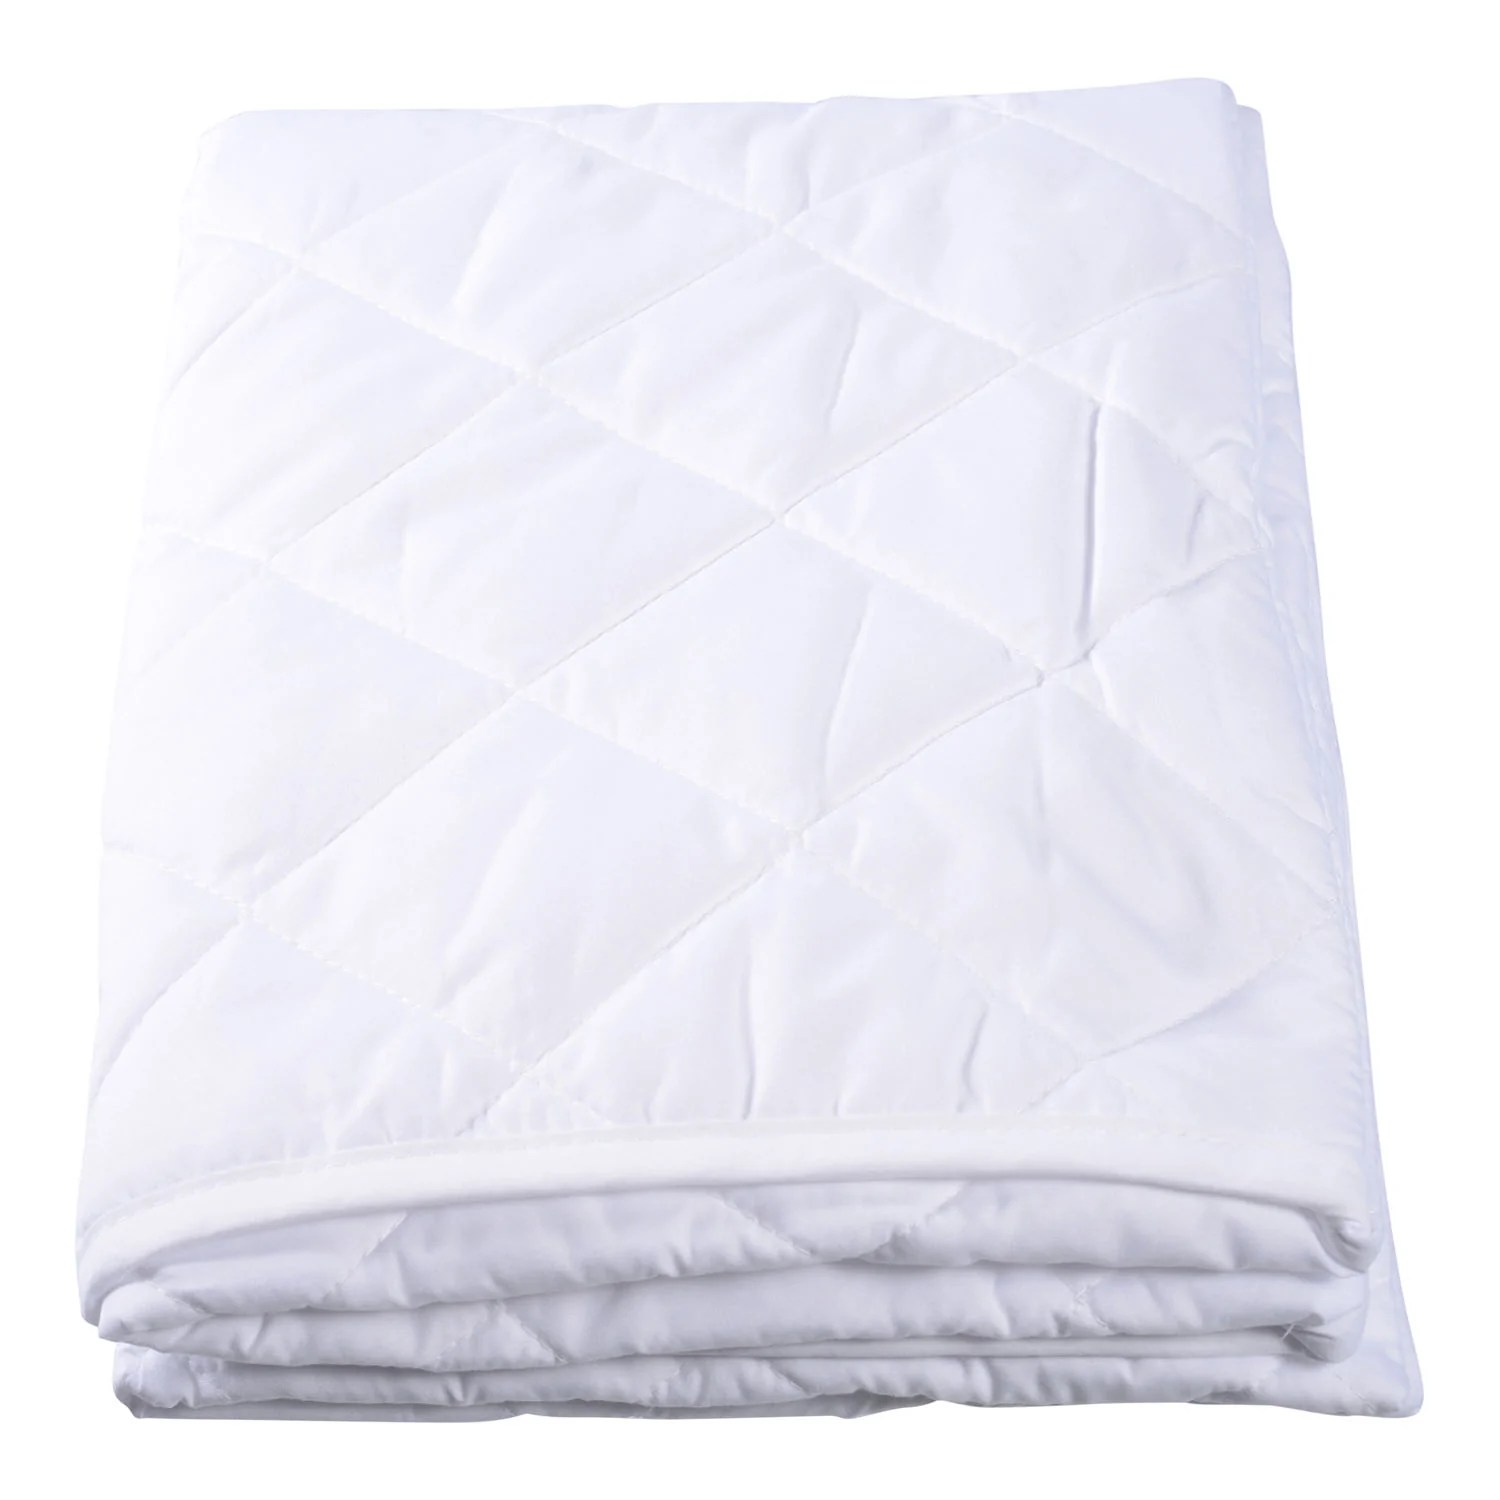 Doona Protector Quilt Pillow Protector Bed Linen Australian Linen Supply